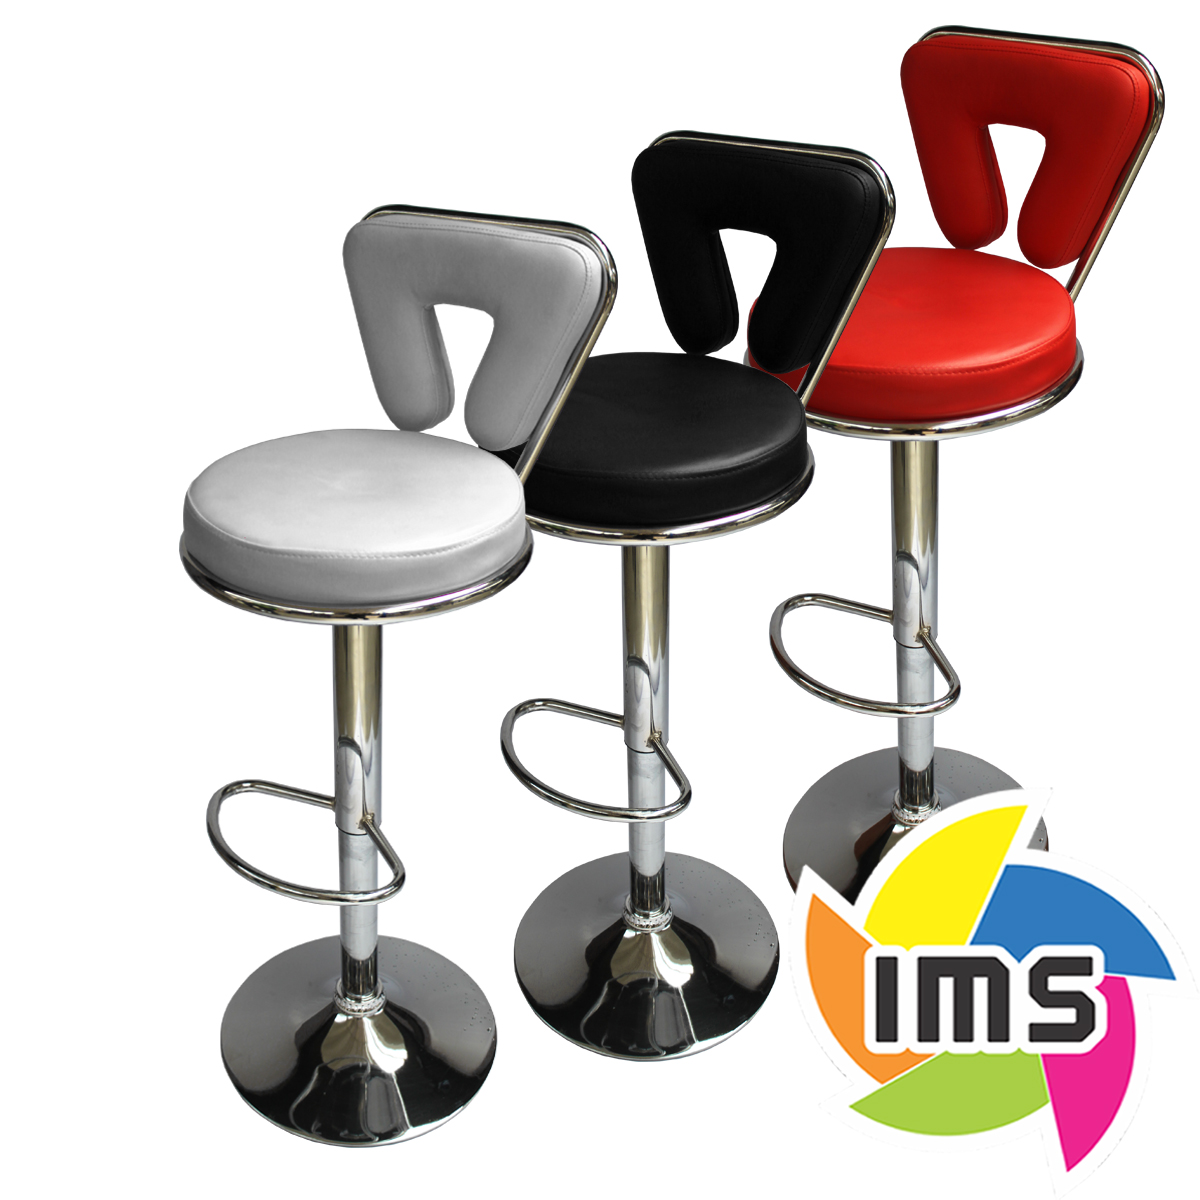 Ims industrias sillas para bar - Sillas de barra de bar ...